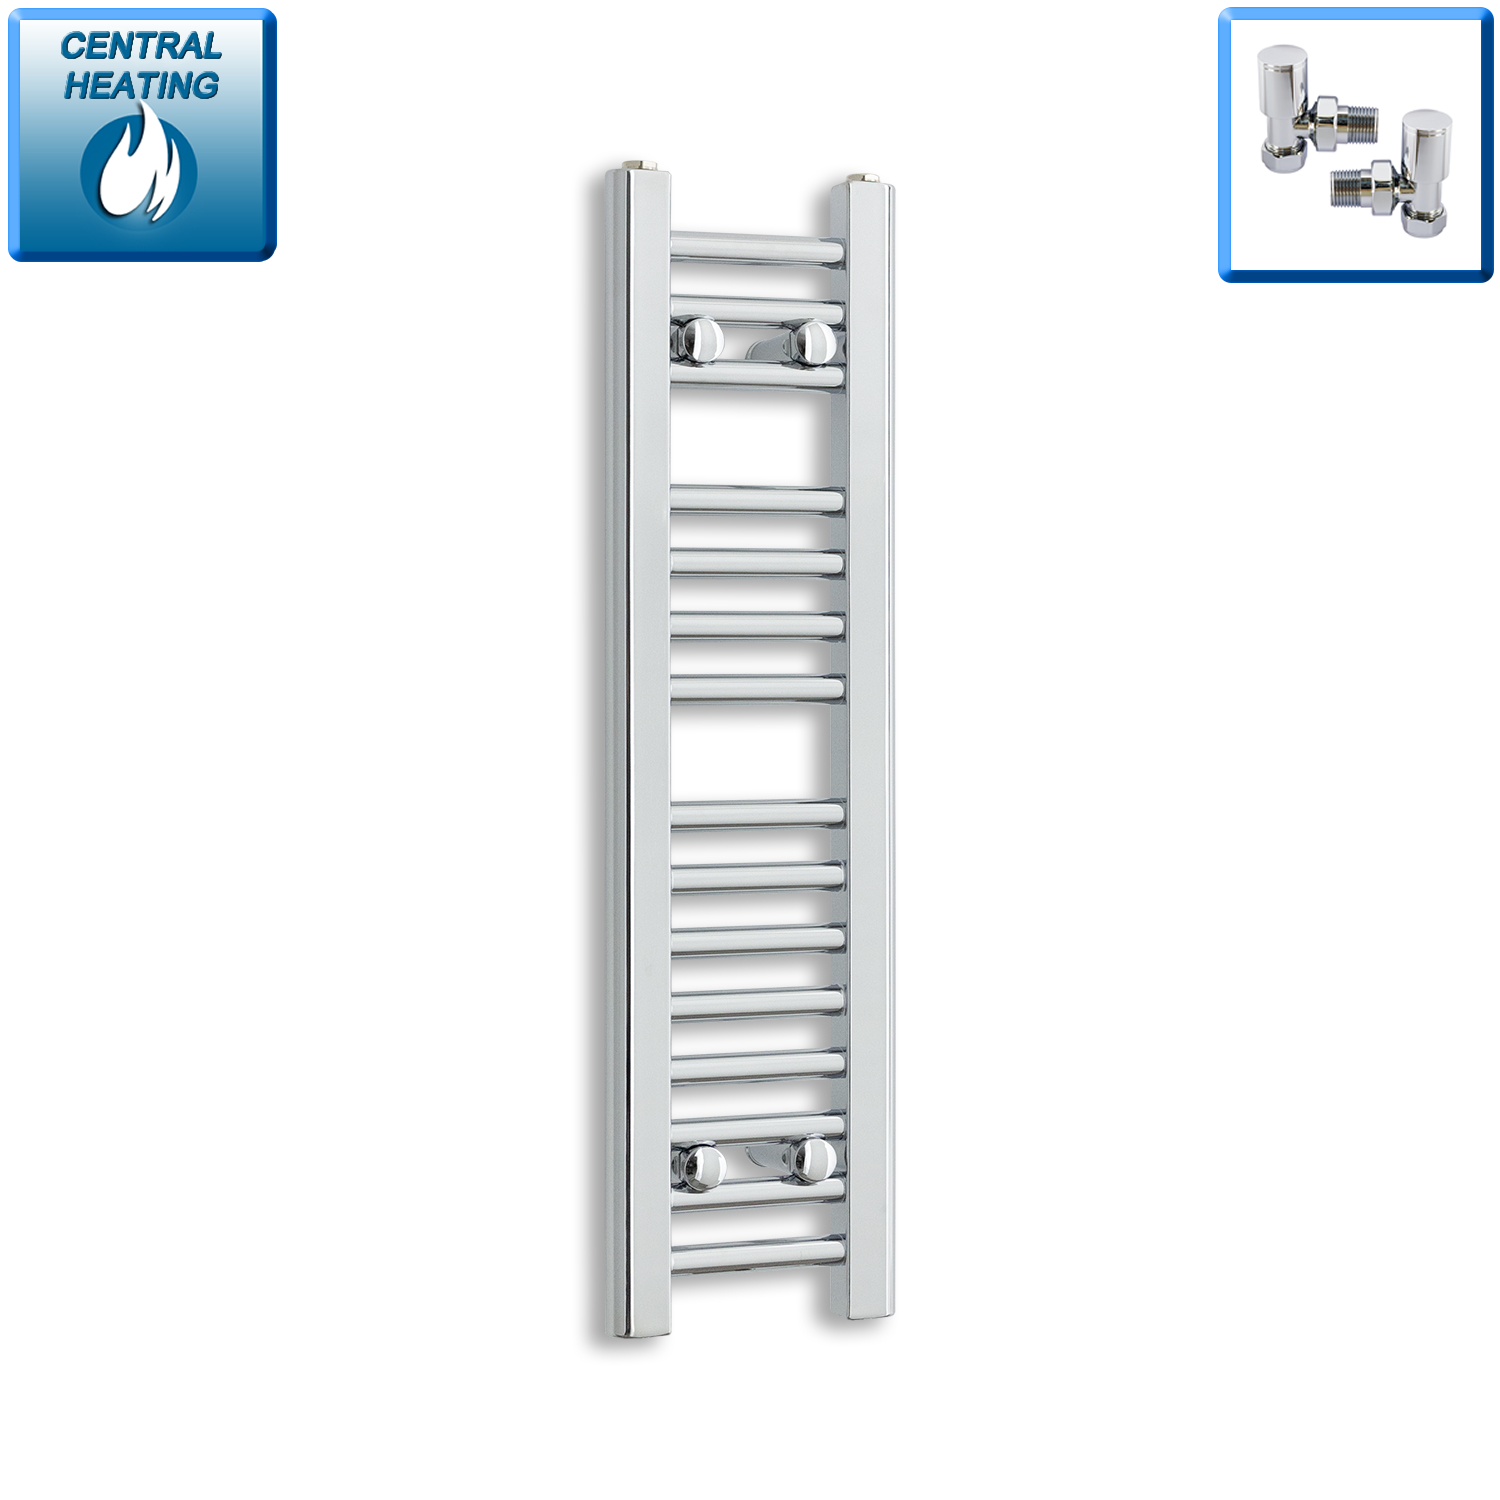 250mm Wide 800mm High Chrome Towel Rail Radiator With Angled Valve